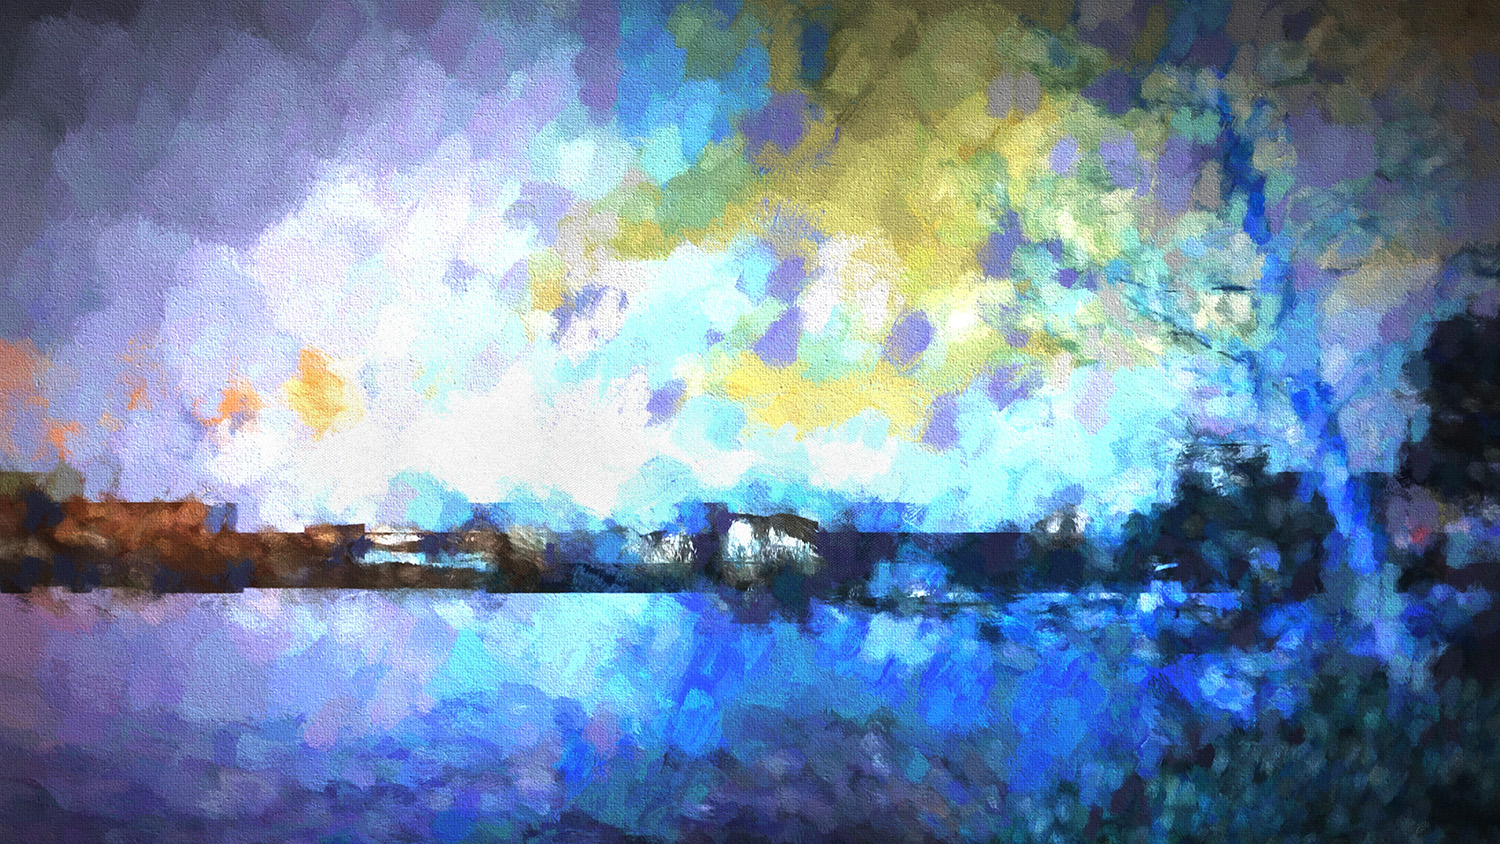 Chelan Winter Impression. Available both as a panoramic print or the two individual images (below).